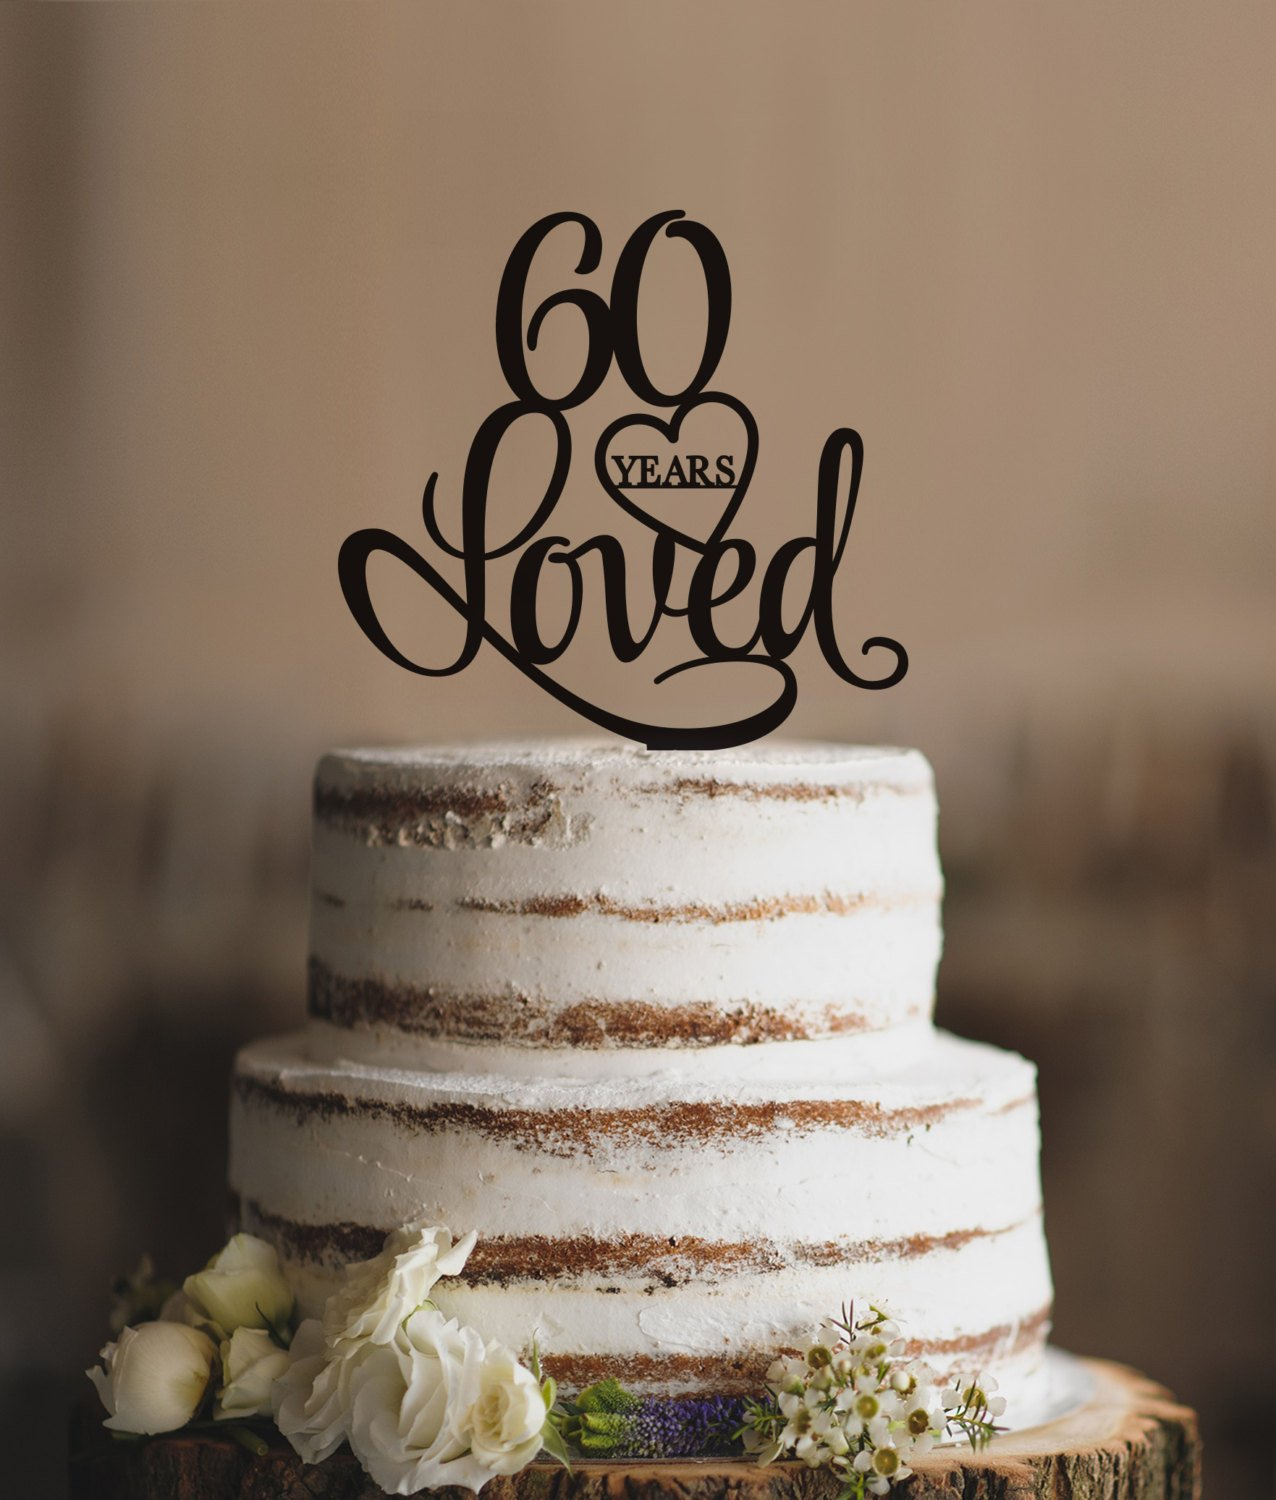 60Th Birthday Cake Toppers 60 Years Loved Topper Classy 60th Etsy